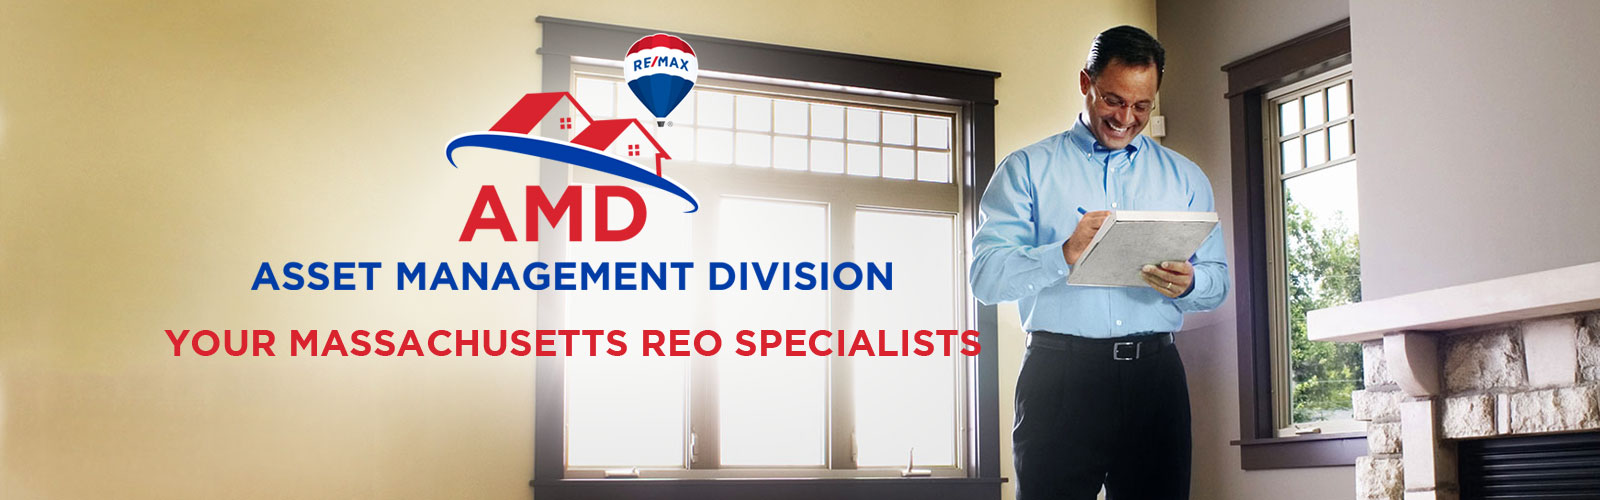 Asset Management Division - Your Massachusetts REO Specialists